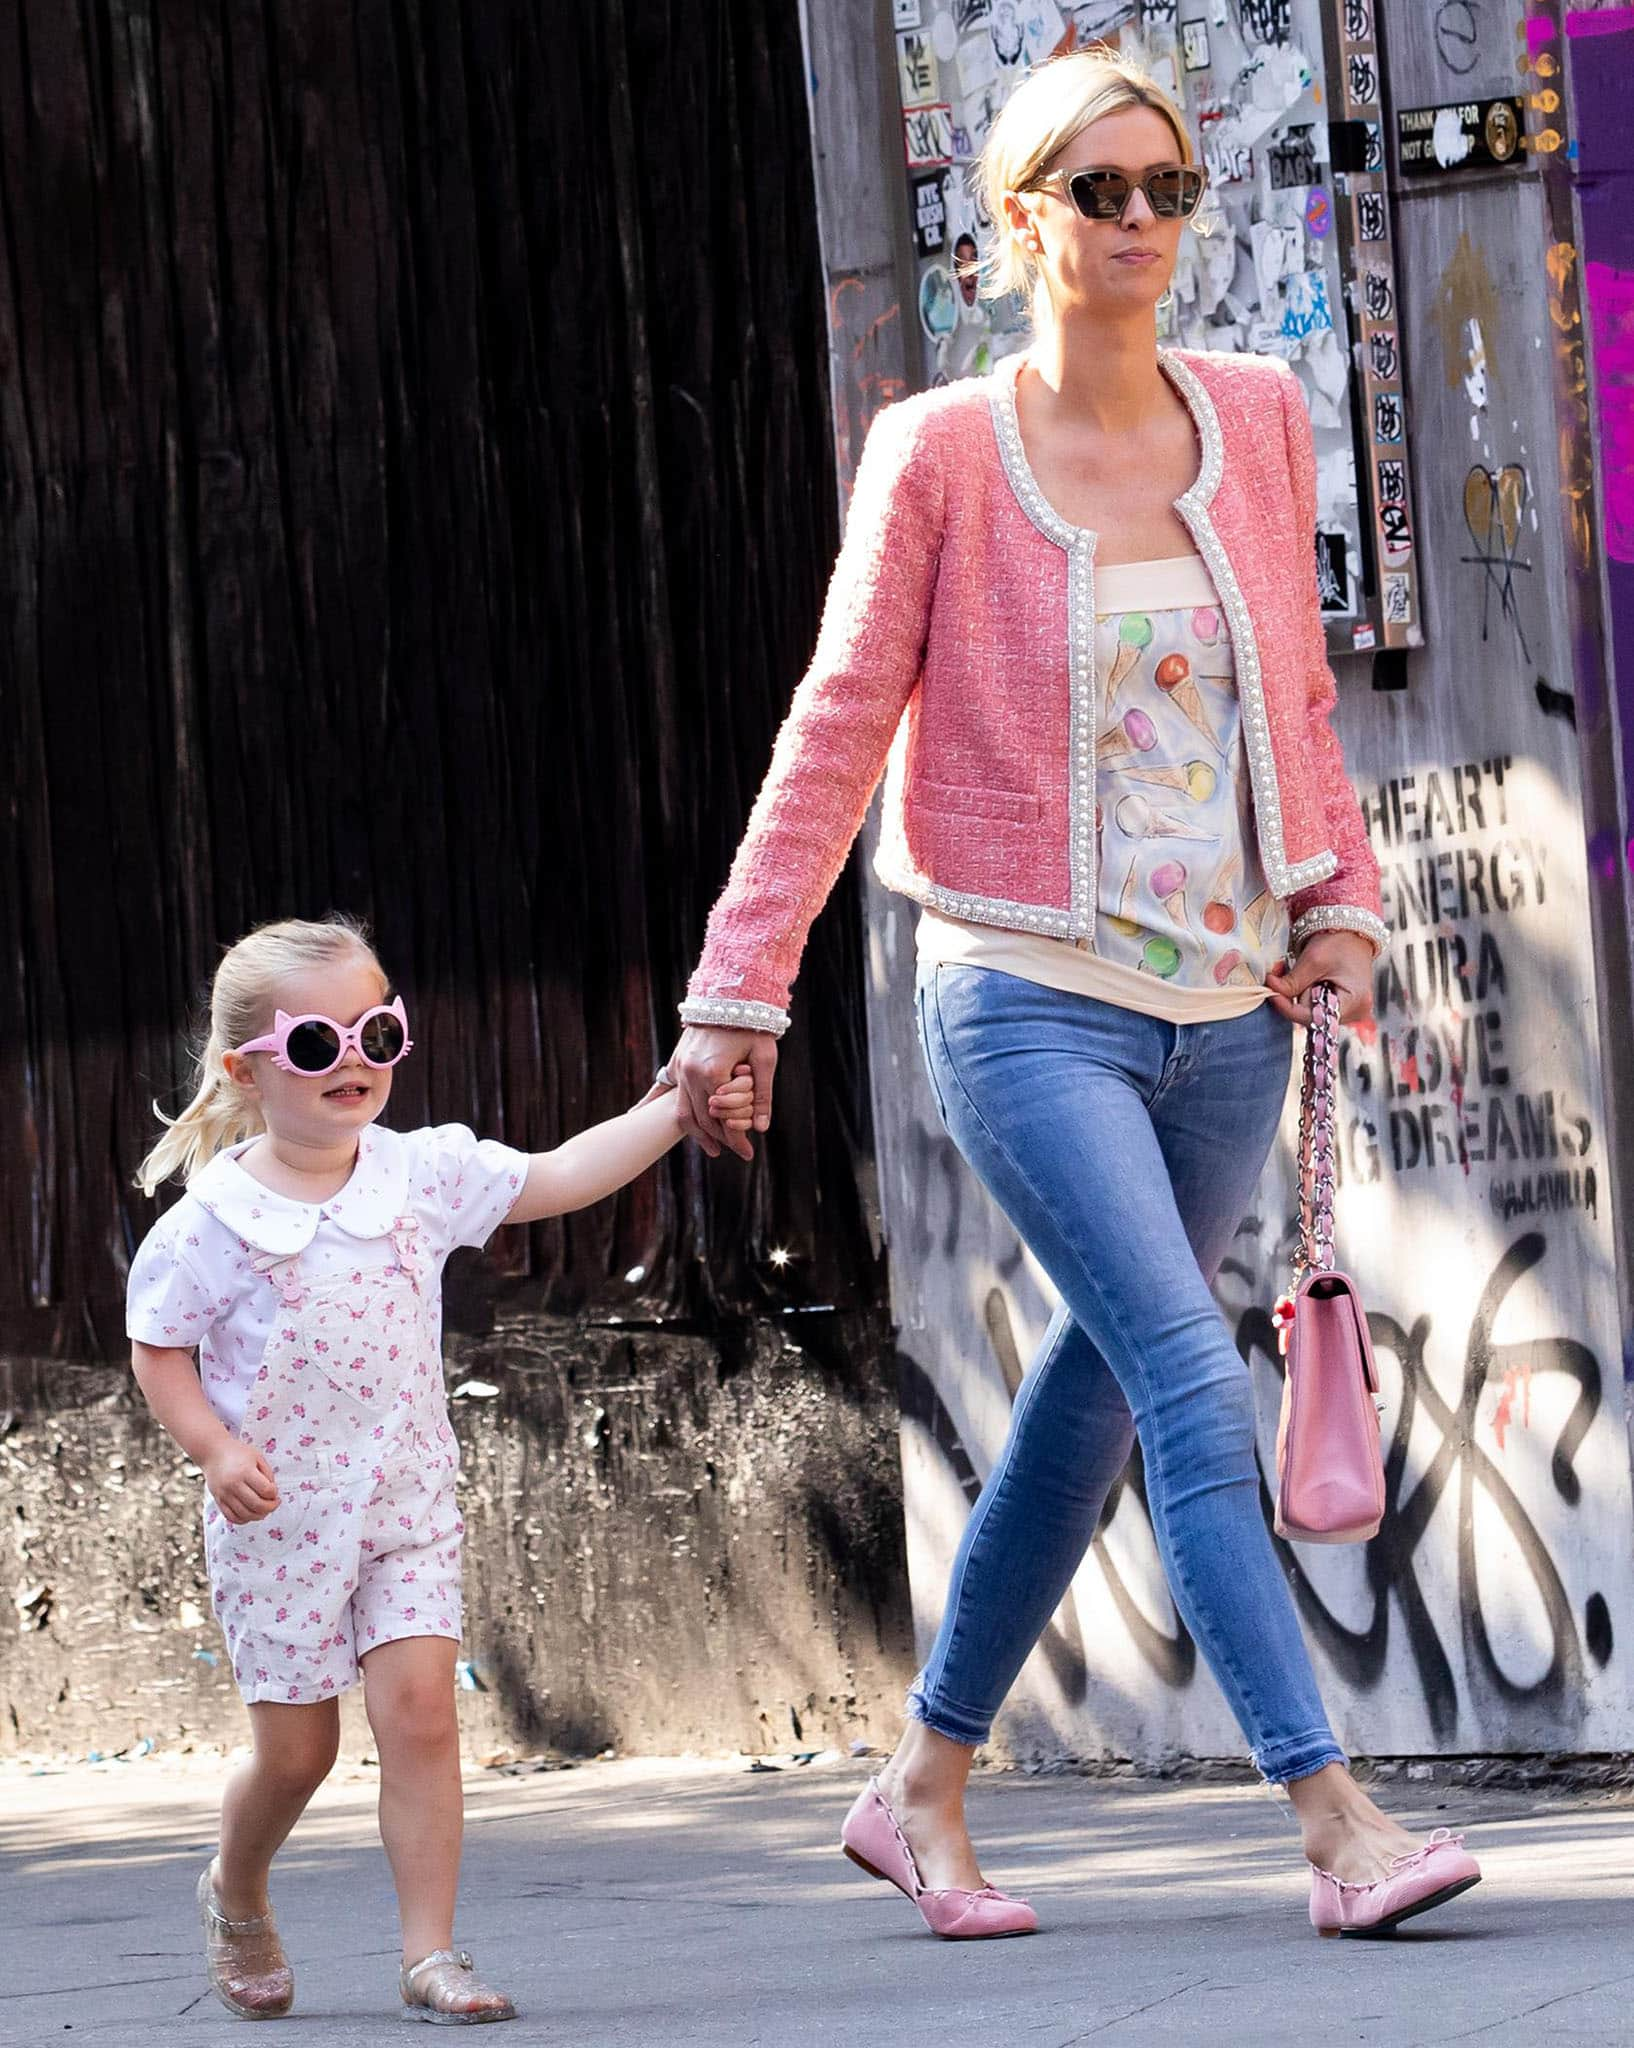 Nicky Hilton's youngest daughter Teddy wears floral overalls with a peter pan-collared blouse and jelly shoes